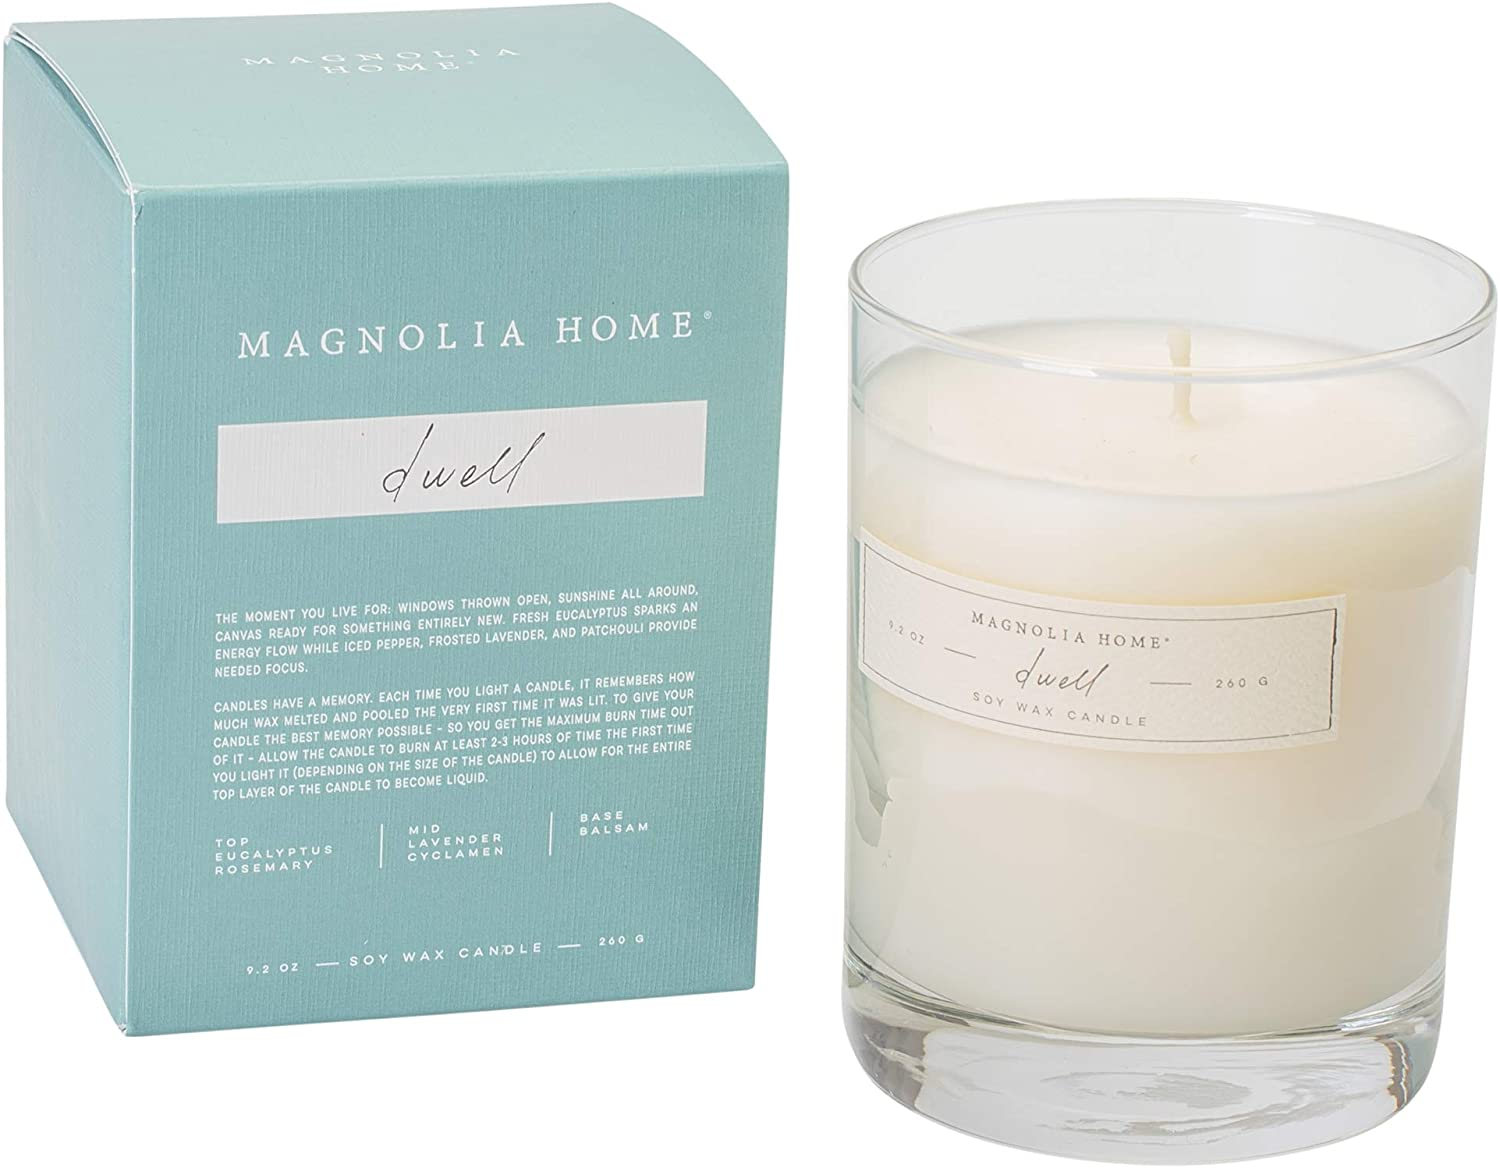 Dwell Scented 9.2 ounce Soy Wax Boxed Glass Candle by Joanna Gaines - Illume